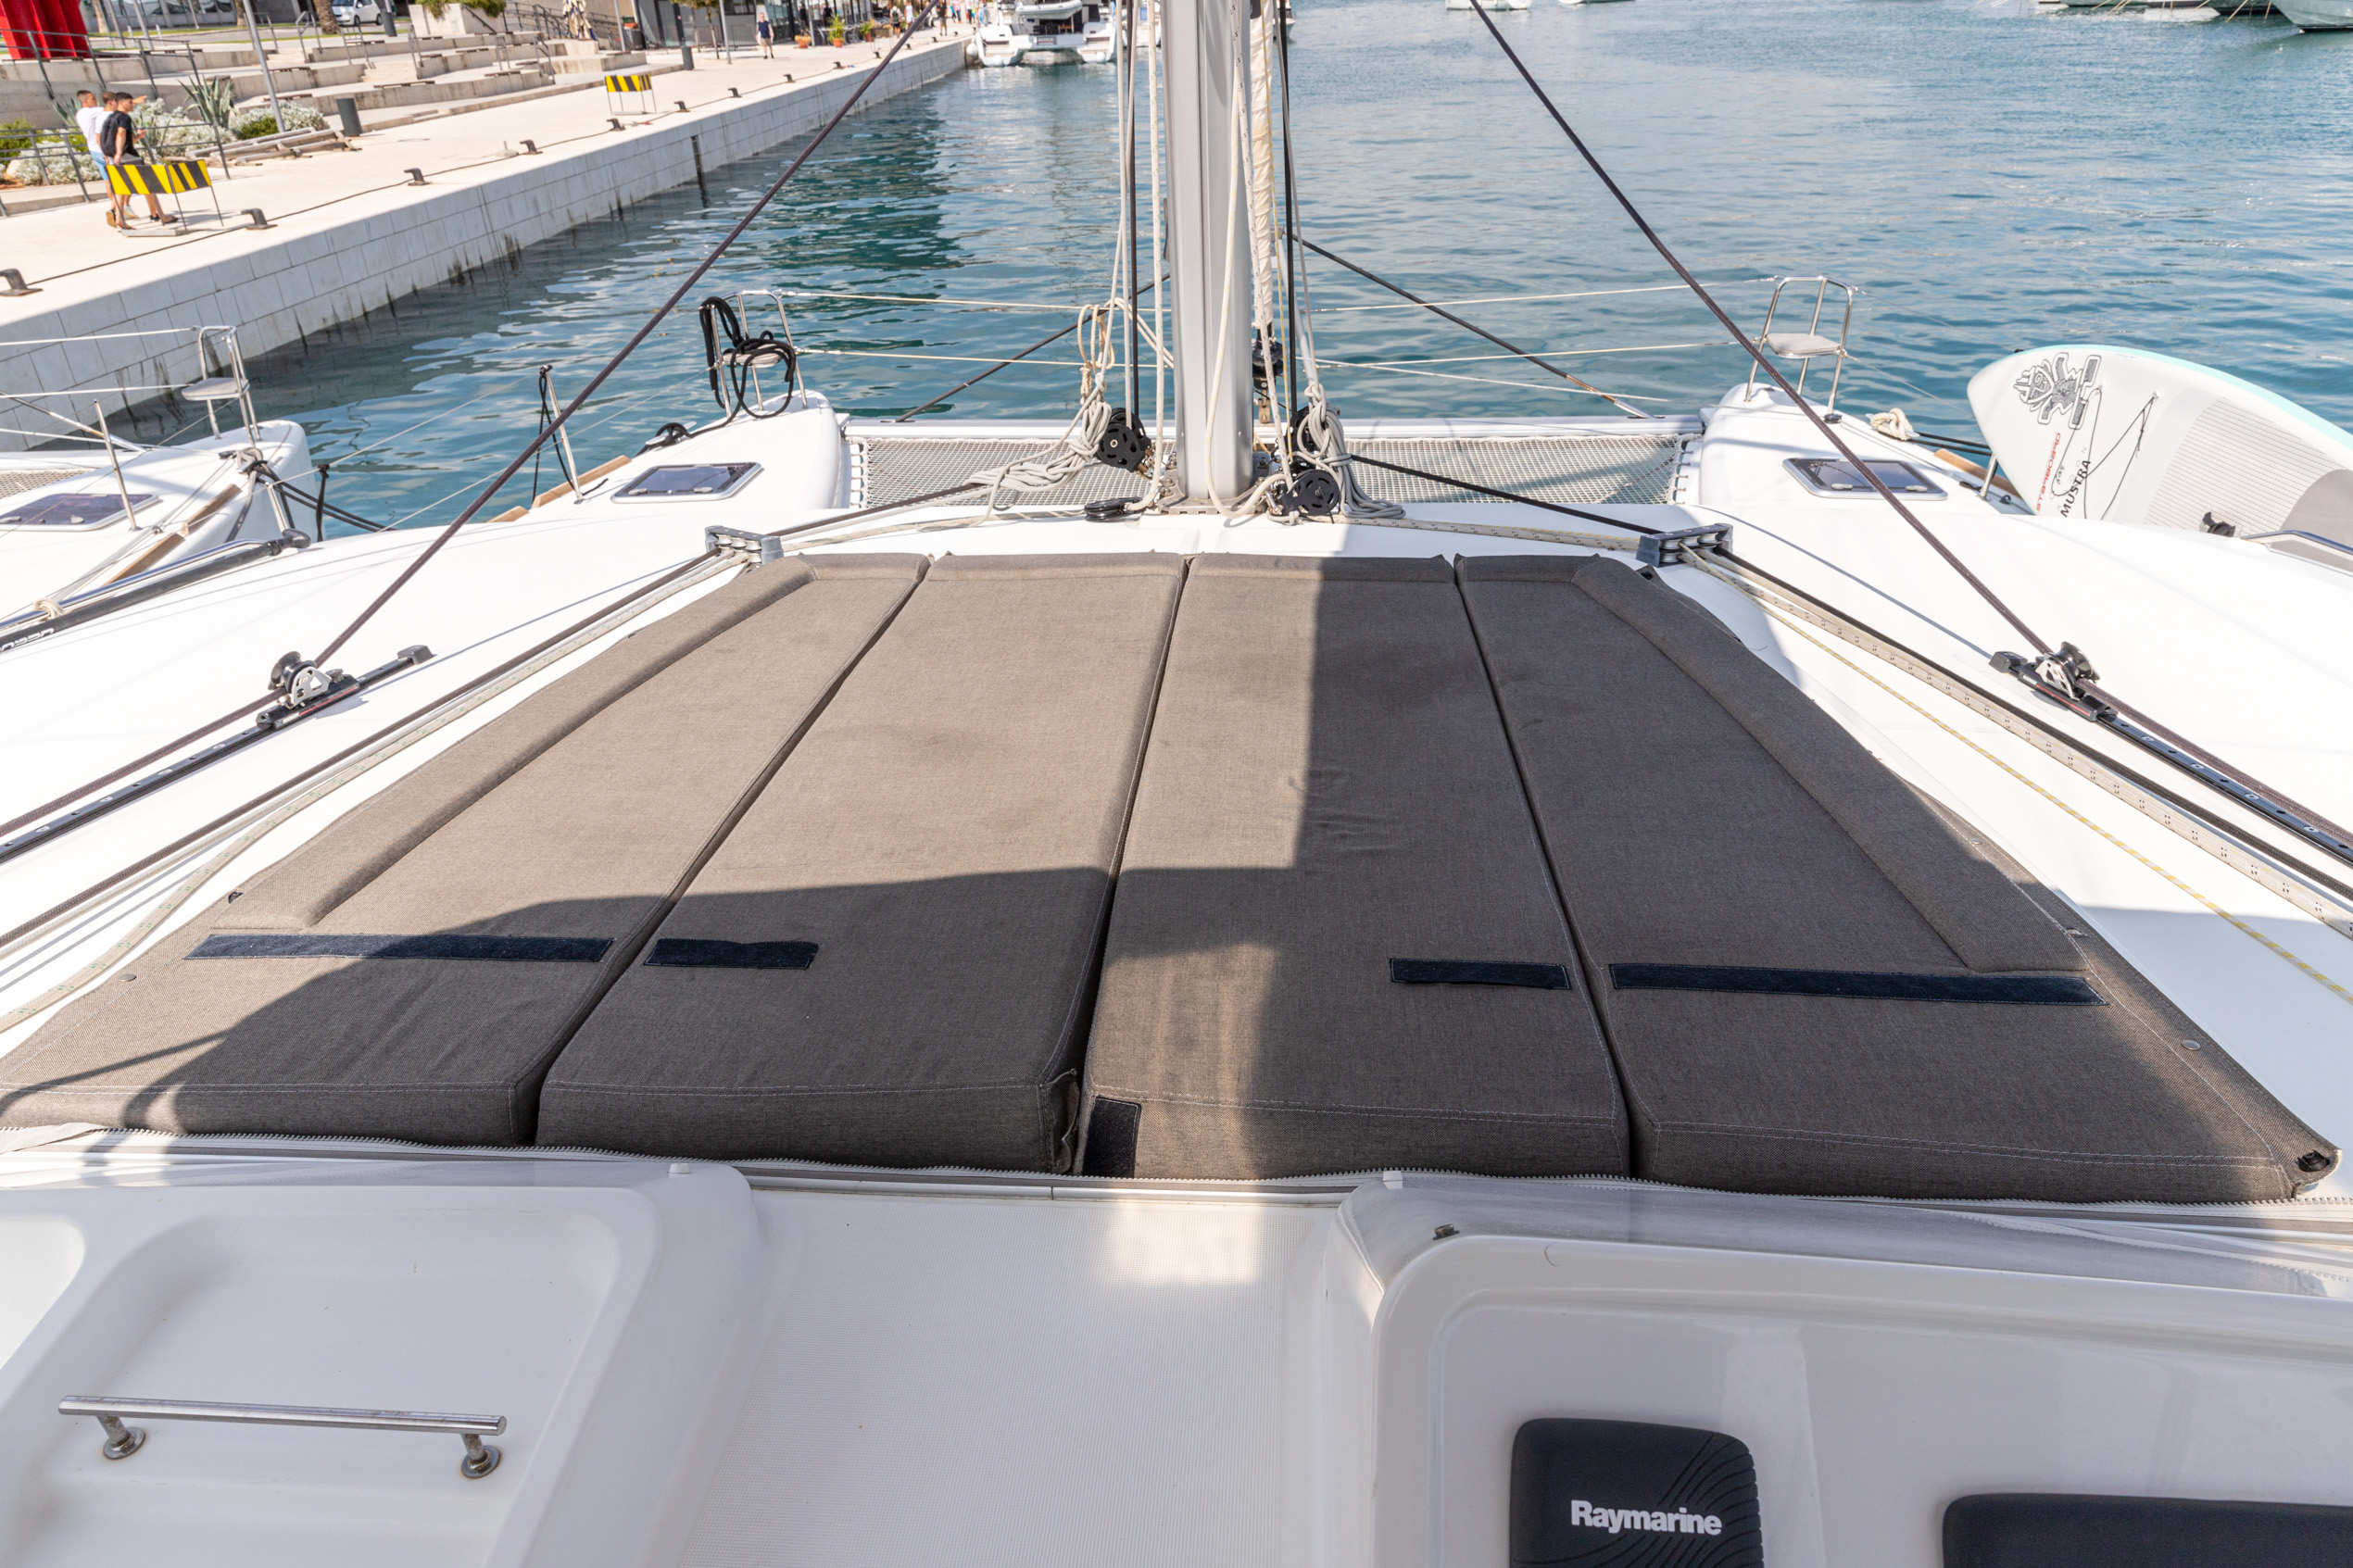 Lagoon 450 (2014) equipped with generator, A/C (sa (MUSTRA I)  - 21